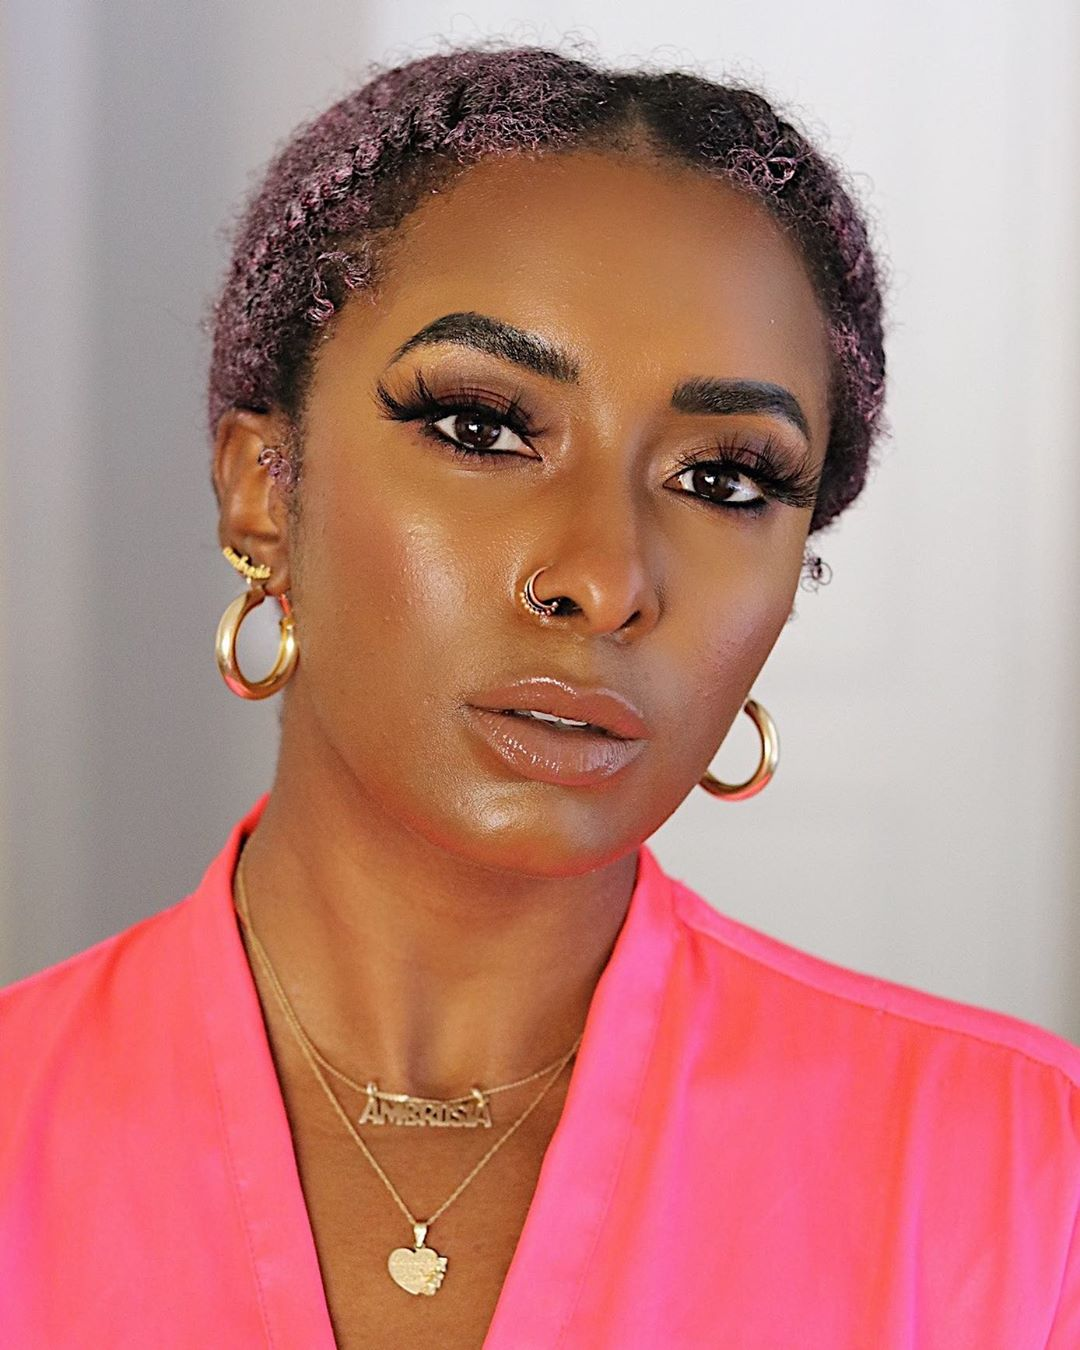 glowy-skin-and-nude-makeup-look-style-rave